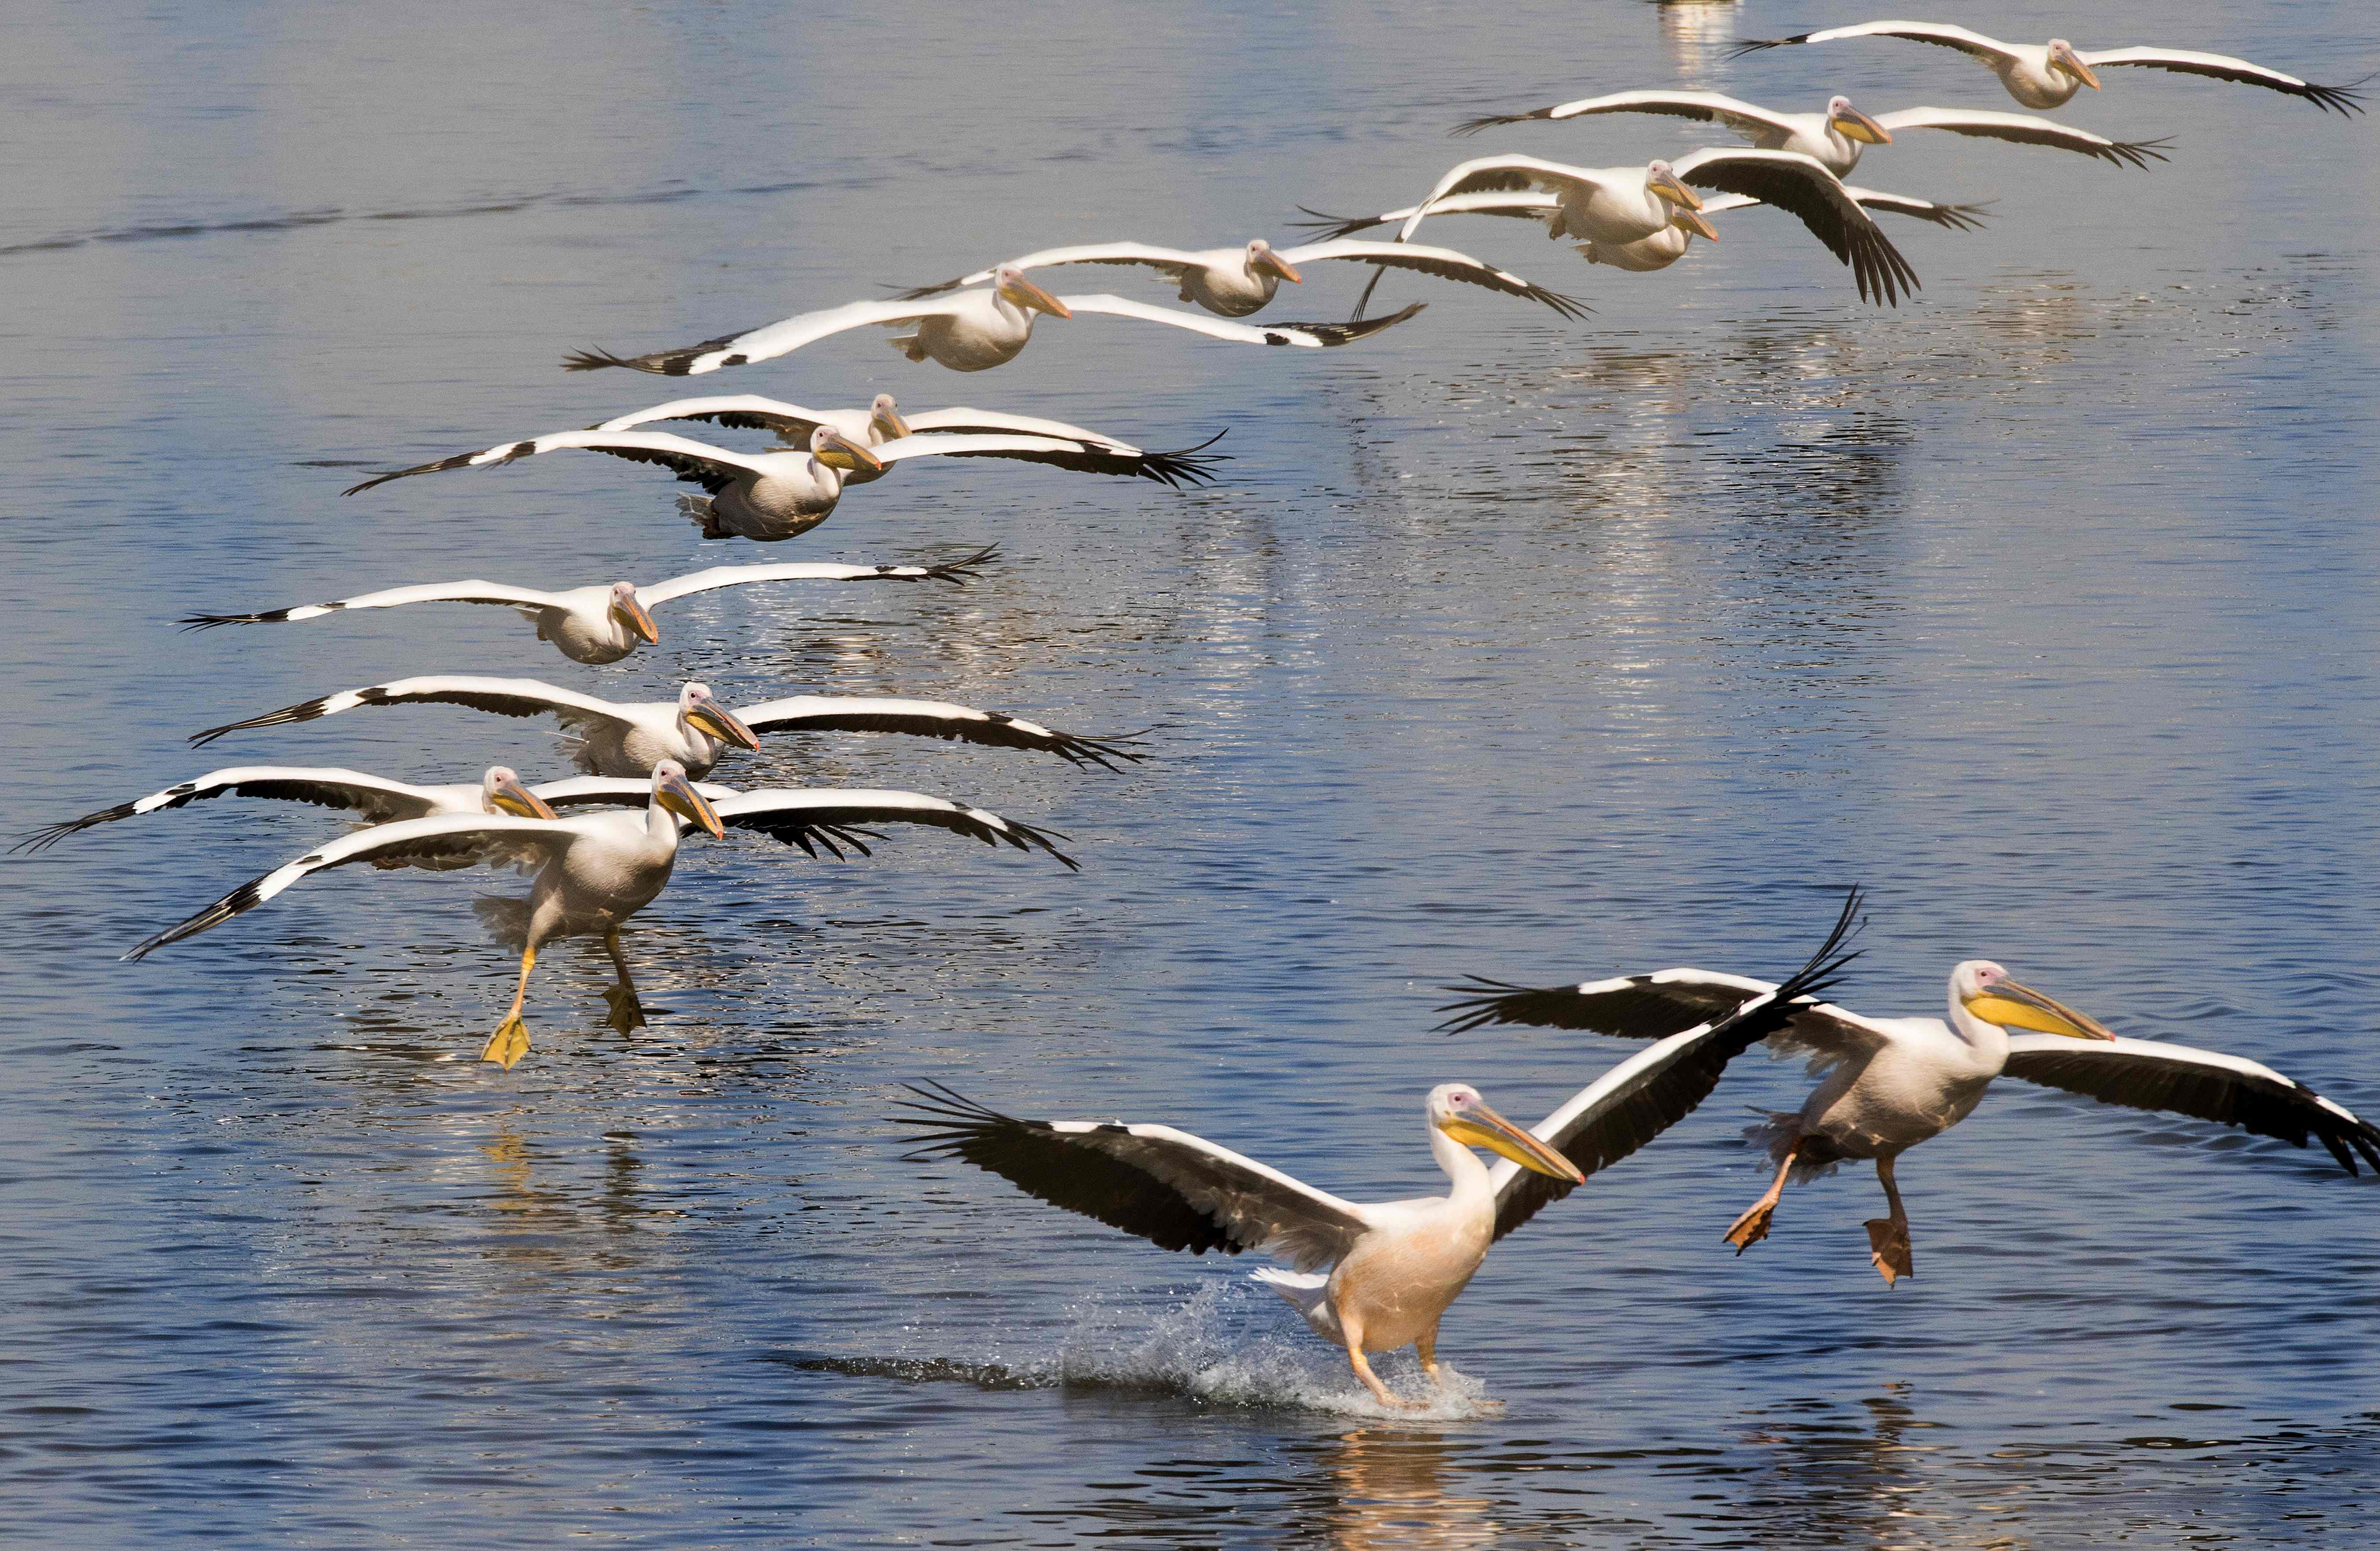 Great white pelicans land at a water reservoir in Mishmar HaSharon north of the Israeli city of Tel Aviv on October 13, 2016.  Thousands of migrant Pelicans pass though Israel on their way to Africa then again when they return to Europe in the summer. Local farmers feed the birds in order to avoid damage to the commercial fish pools.  / AFP / JACK GUEZ